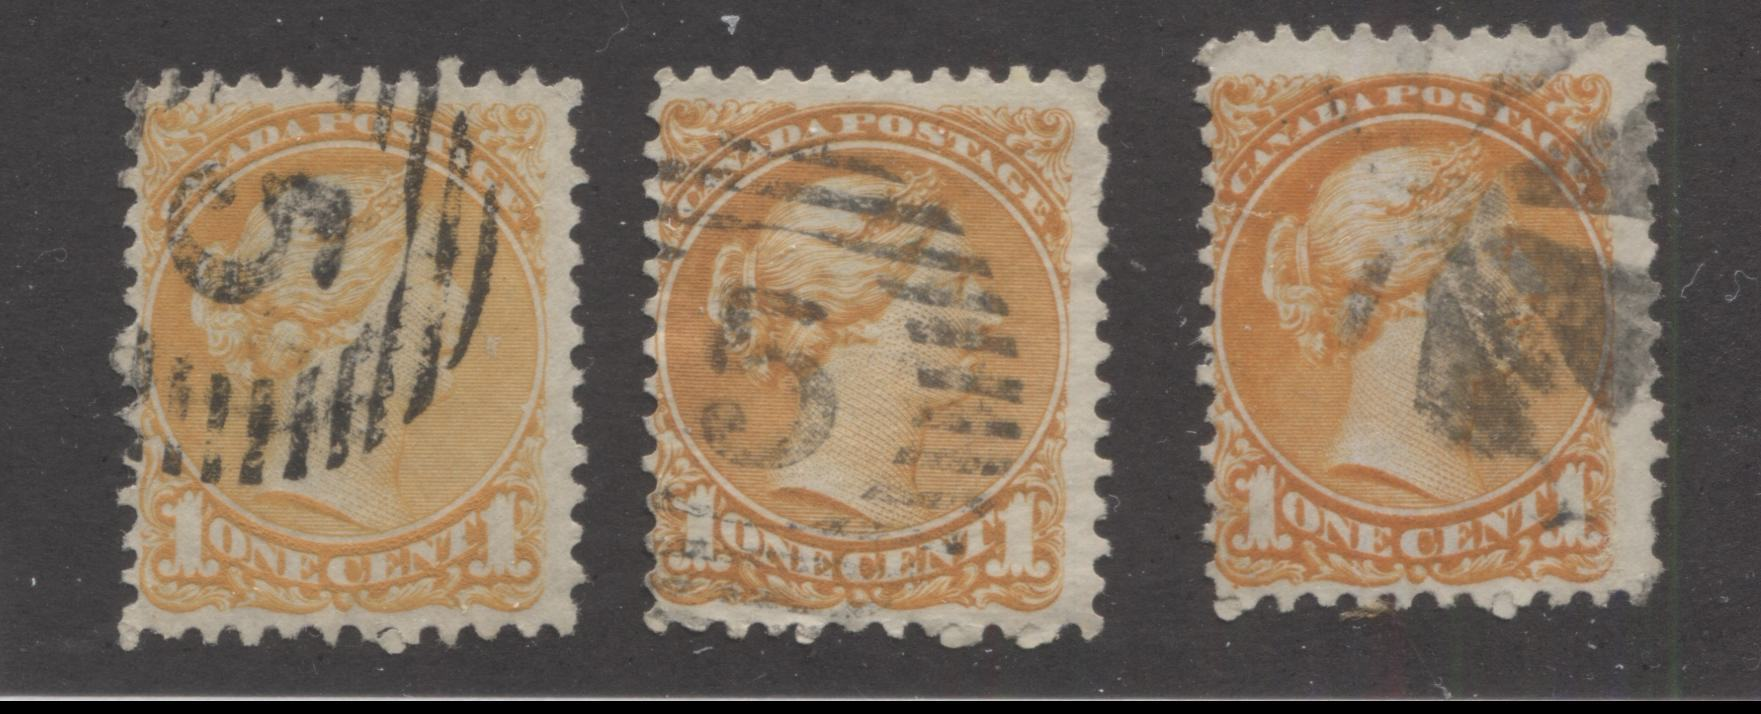 Canada #35a, 35iv, 35v 1c Orange Queen Victoria, 1870-1897 Small Queen Issue, Three Very Good or Fine Used Examples of the First Ottawa Printing, Each a Different Shade or Paper, Perf. 11.9 x 12 Brixton Chrome